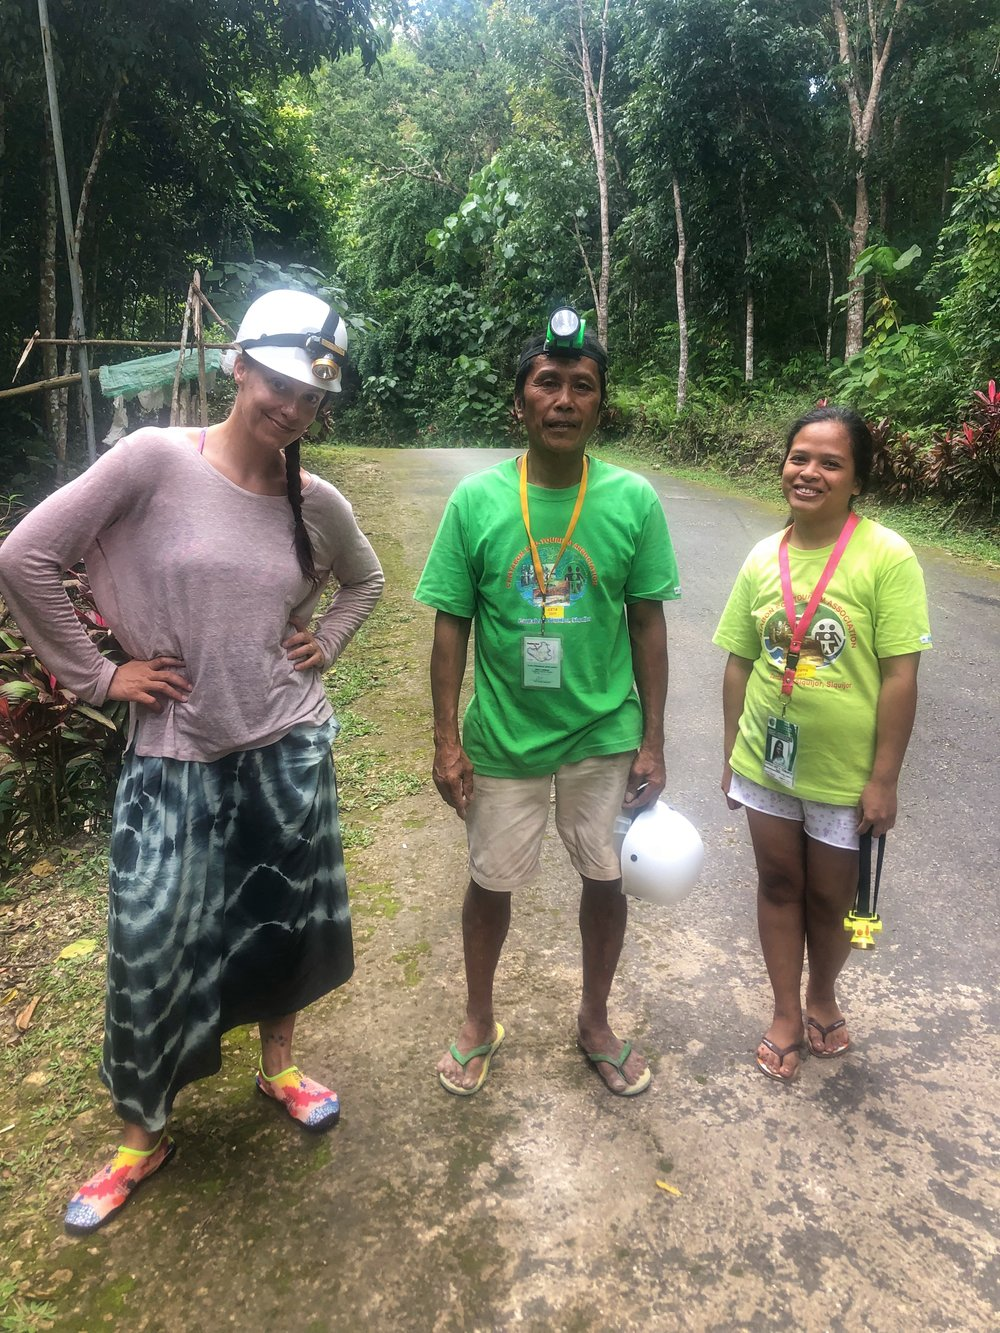 My underdressed caving guides Romy and Lovely. How they kept their sandals on is beyond me.